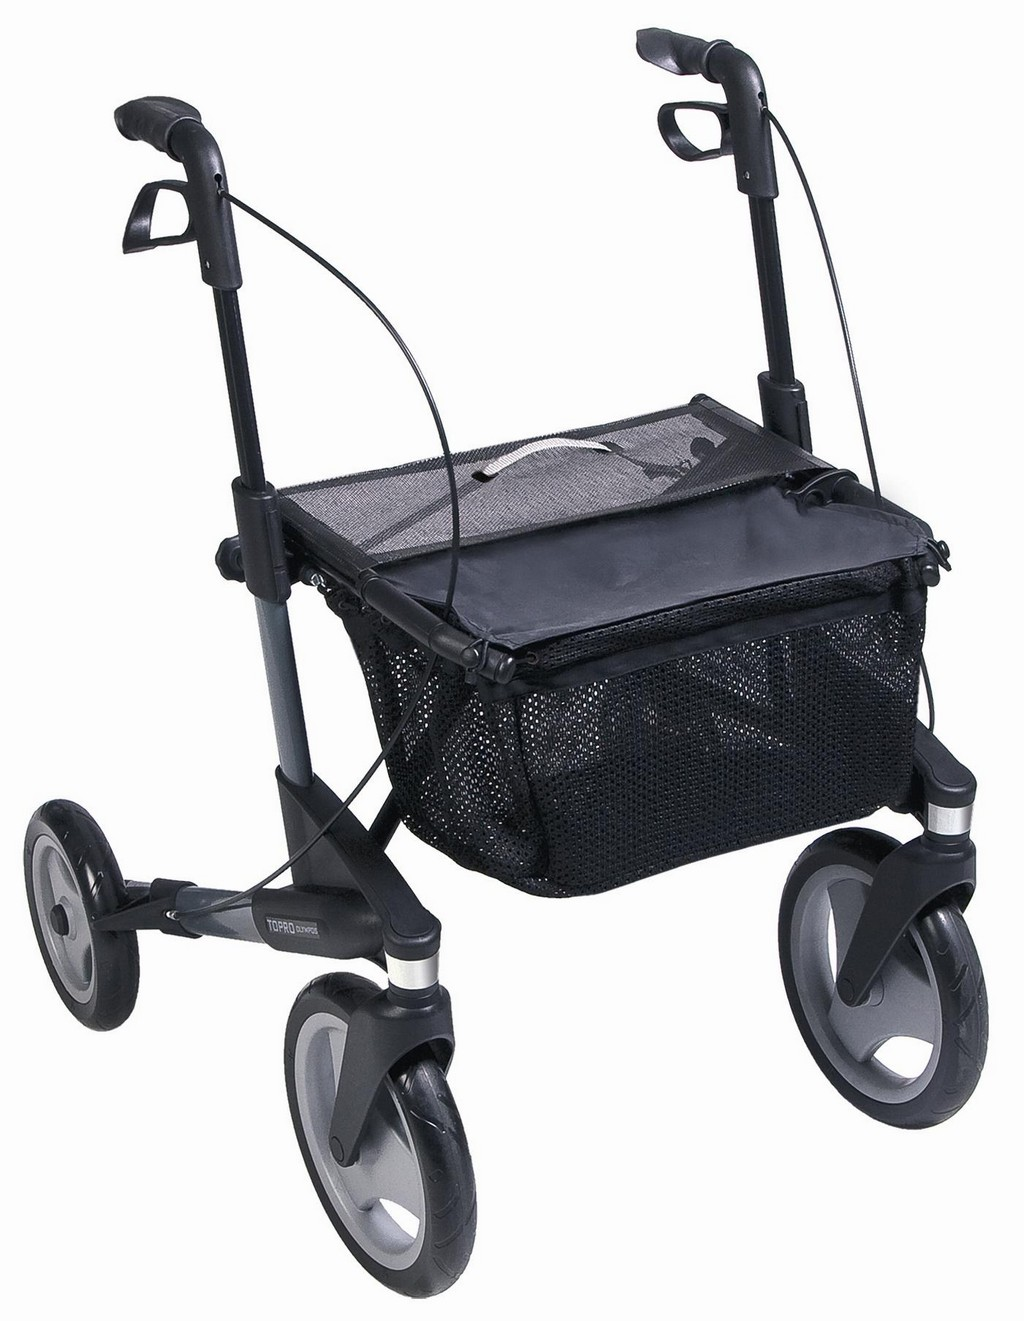 rollators with seat, pro basics rollators, invacare bariatric rollator, rollator trays mugholders